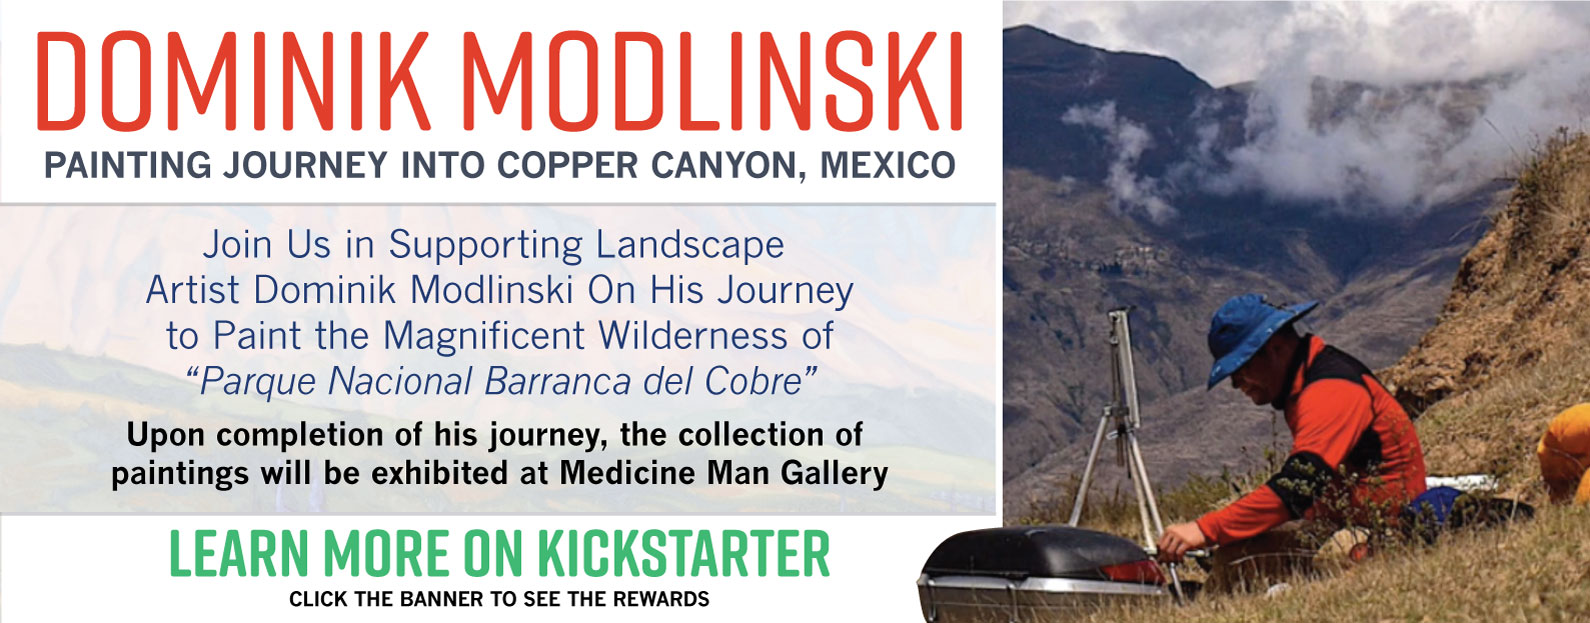 Dominik Modlinski: Painting Journey into Copper Canyon, Mexico